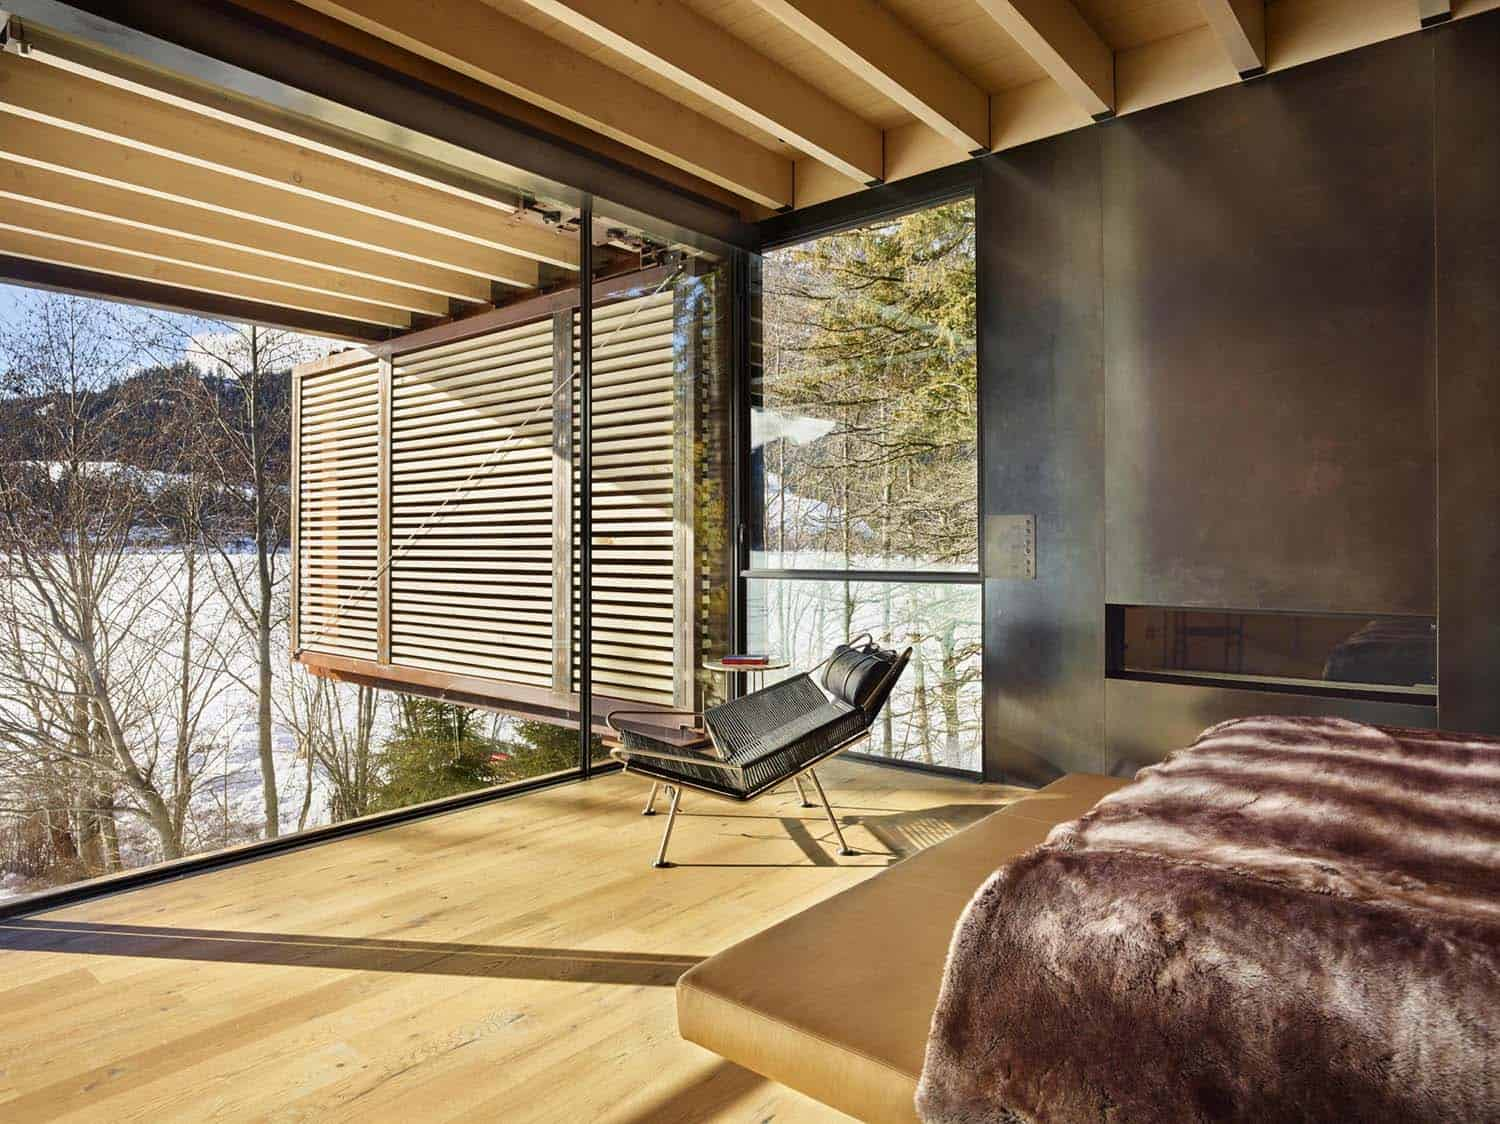 Mountain Ski Retreat-Olson Kundig Architects-10-1 Kindesign